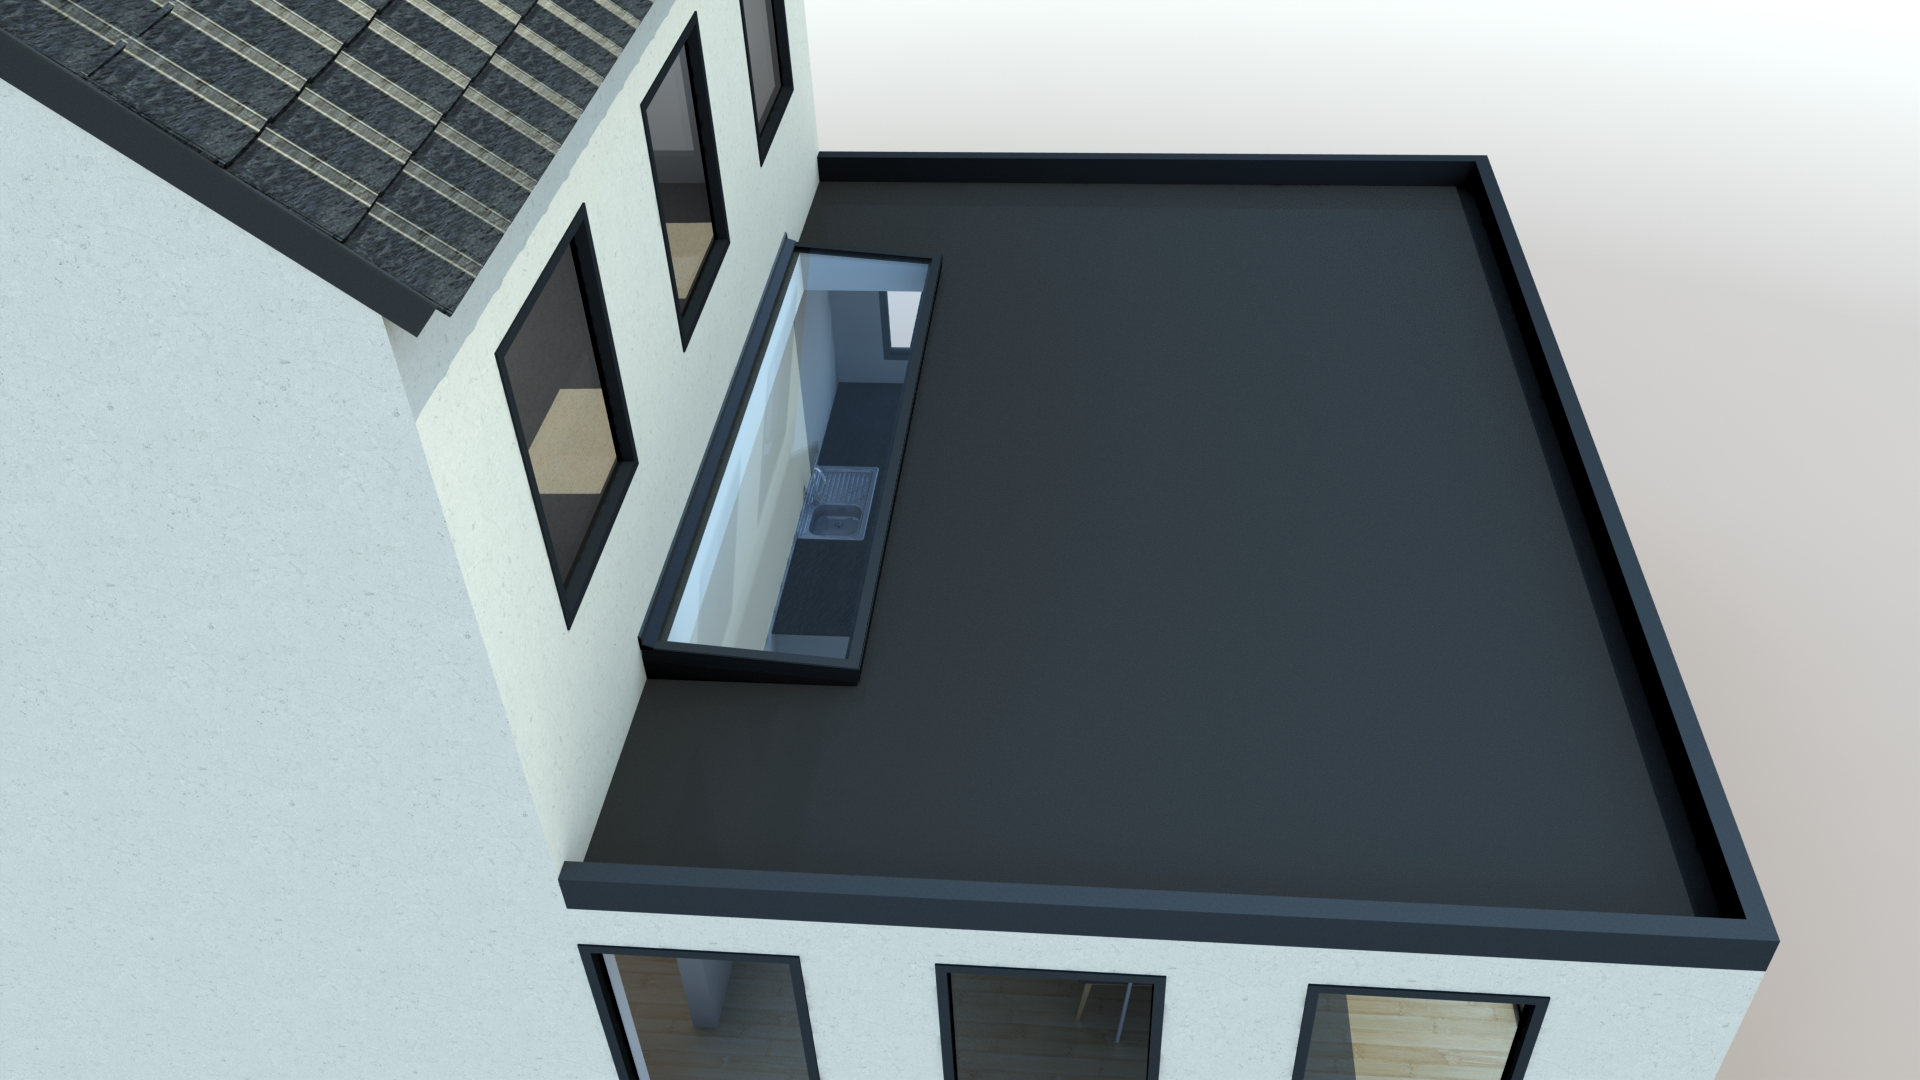 Wall Abutment Rooflights High Quality Low Maintenance